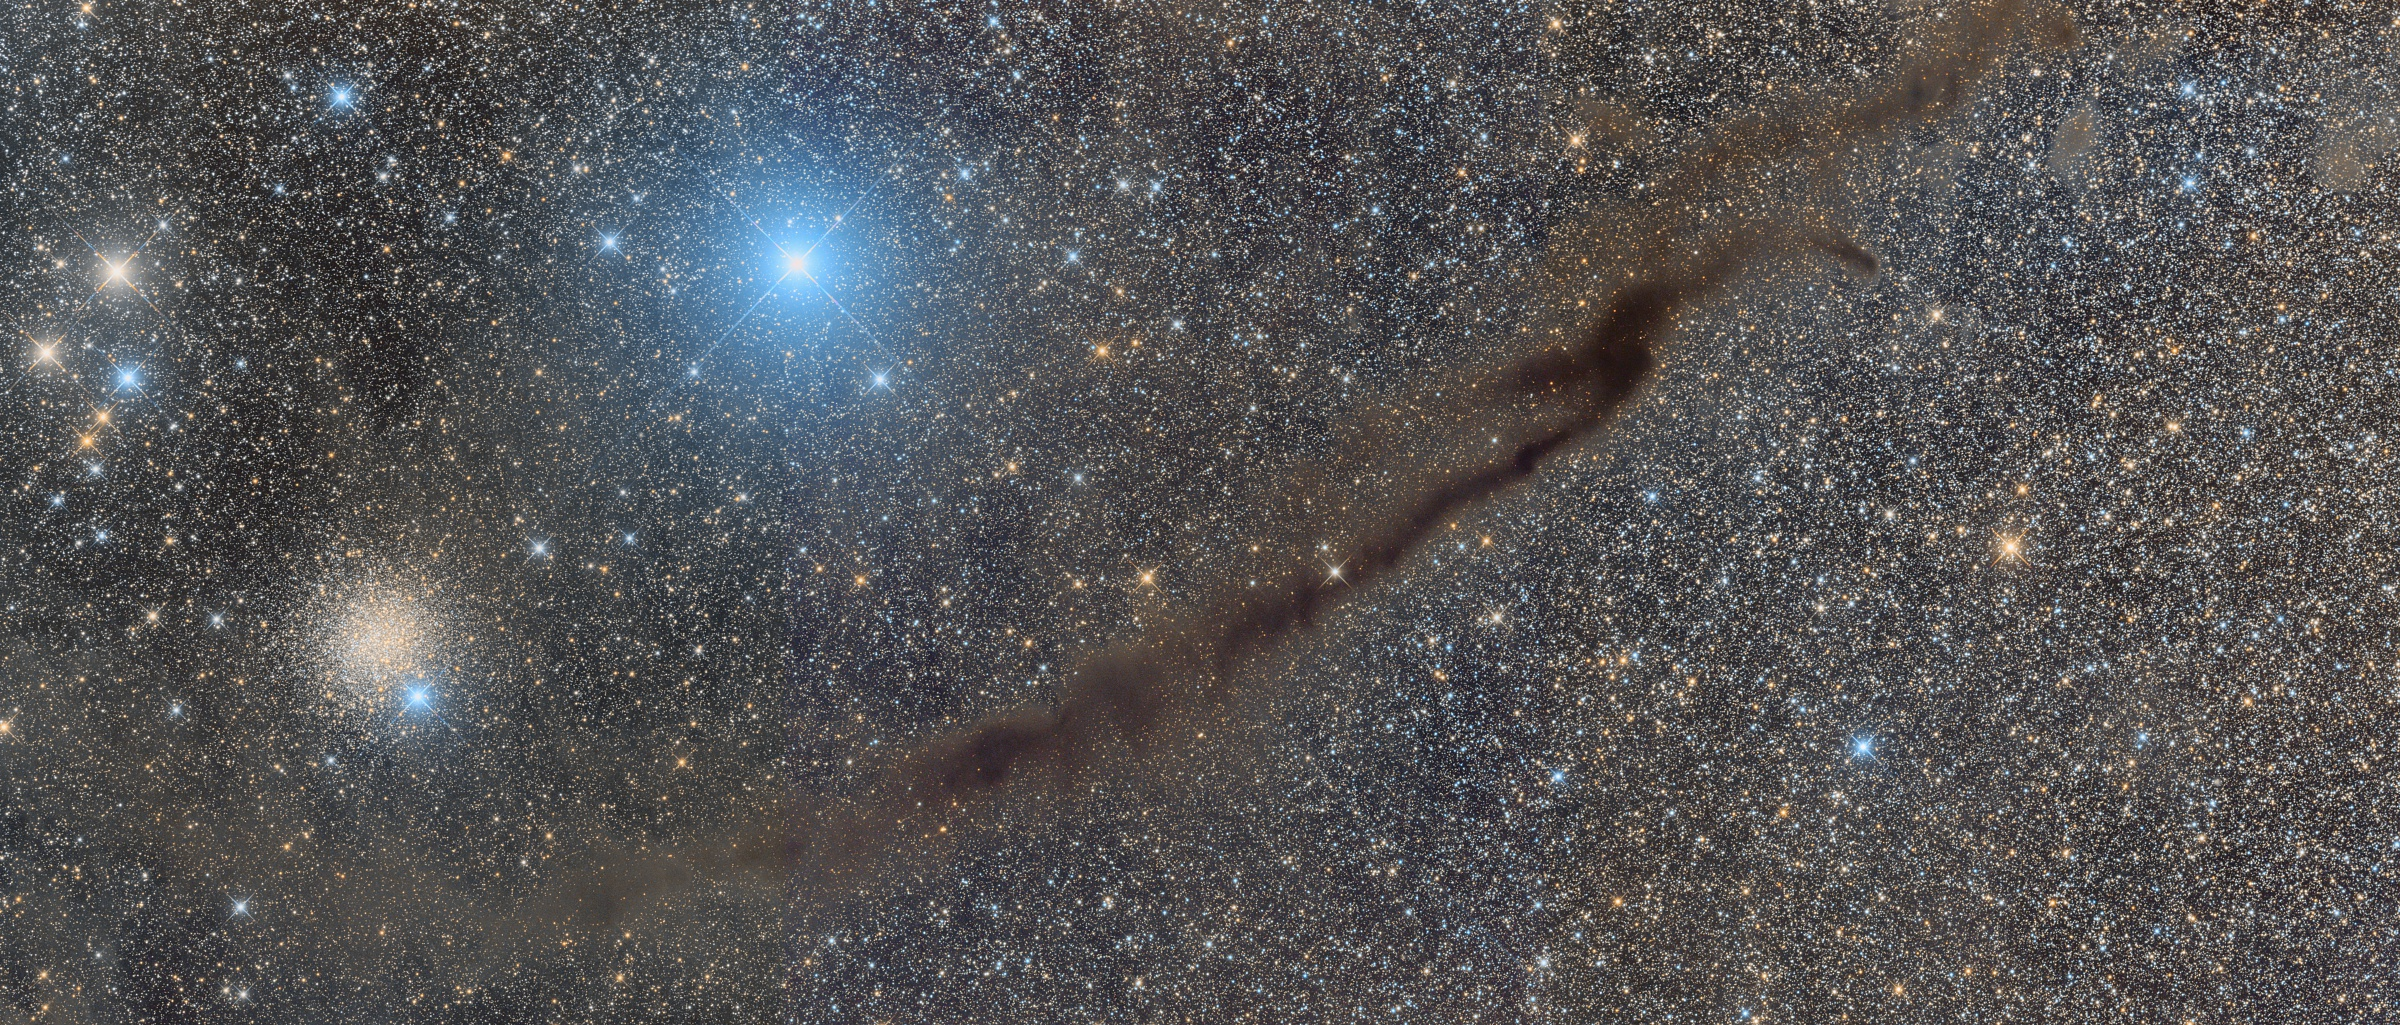 NGC 4372 and the Dark Doodad Nebula in Musca